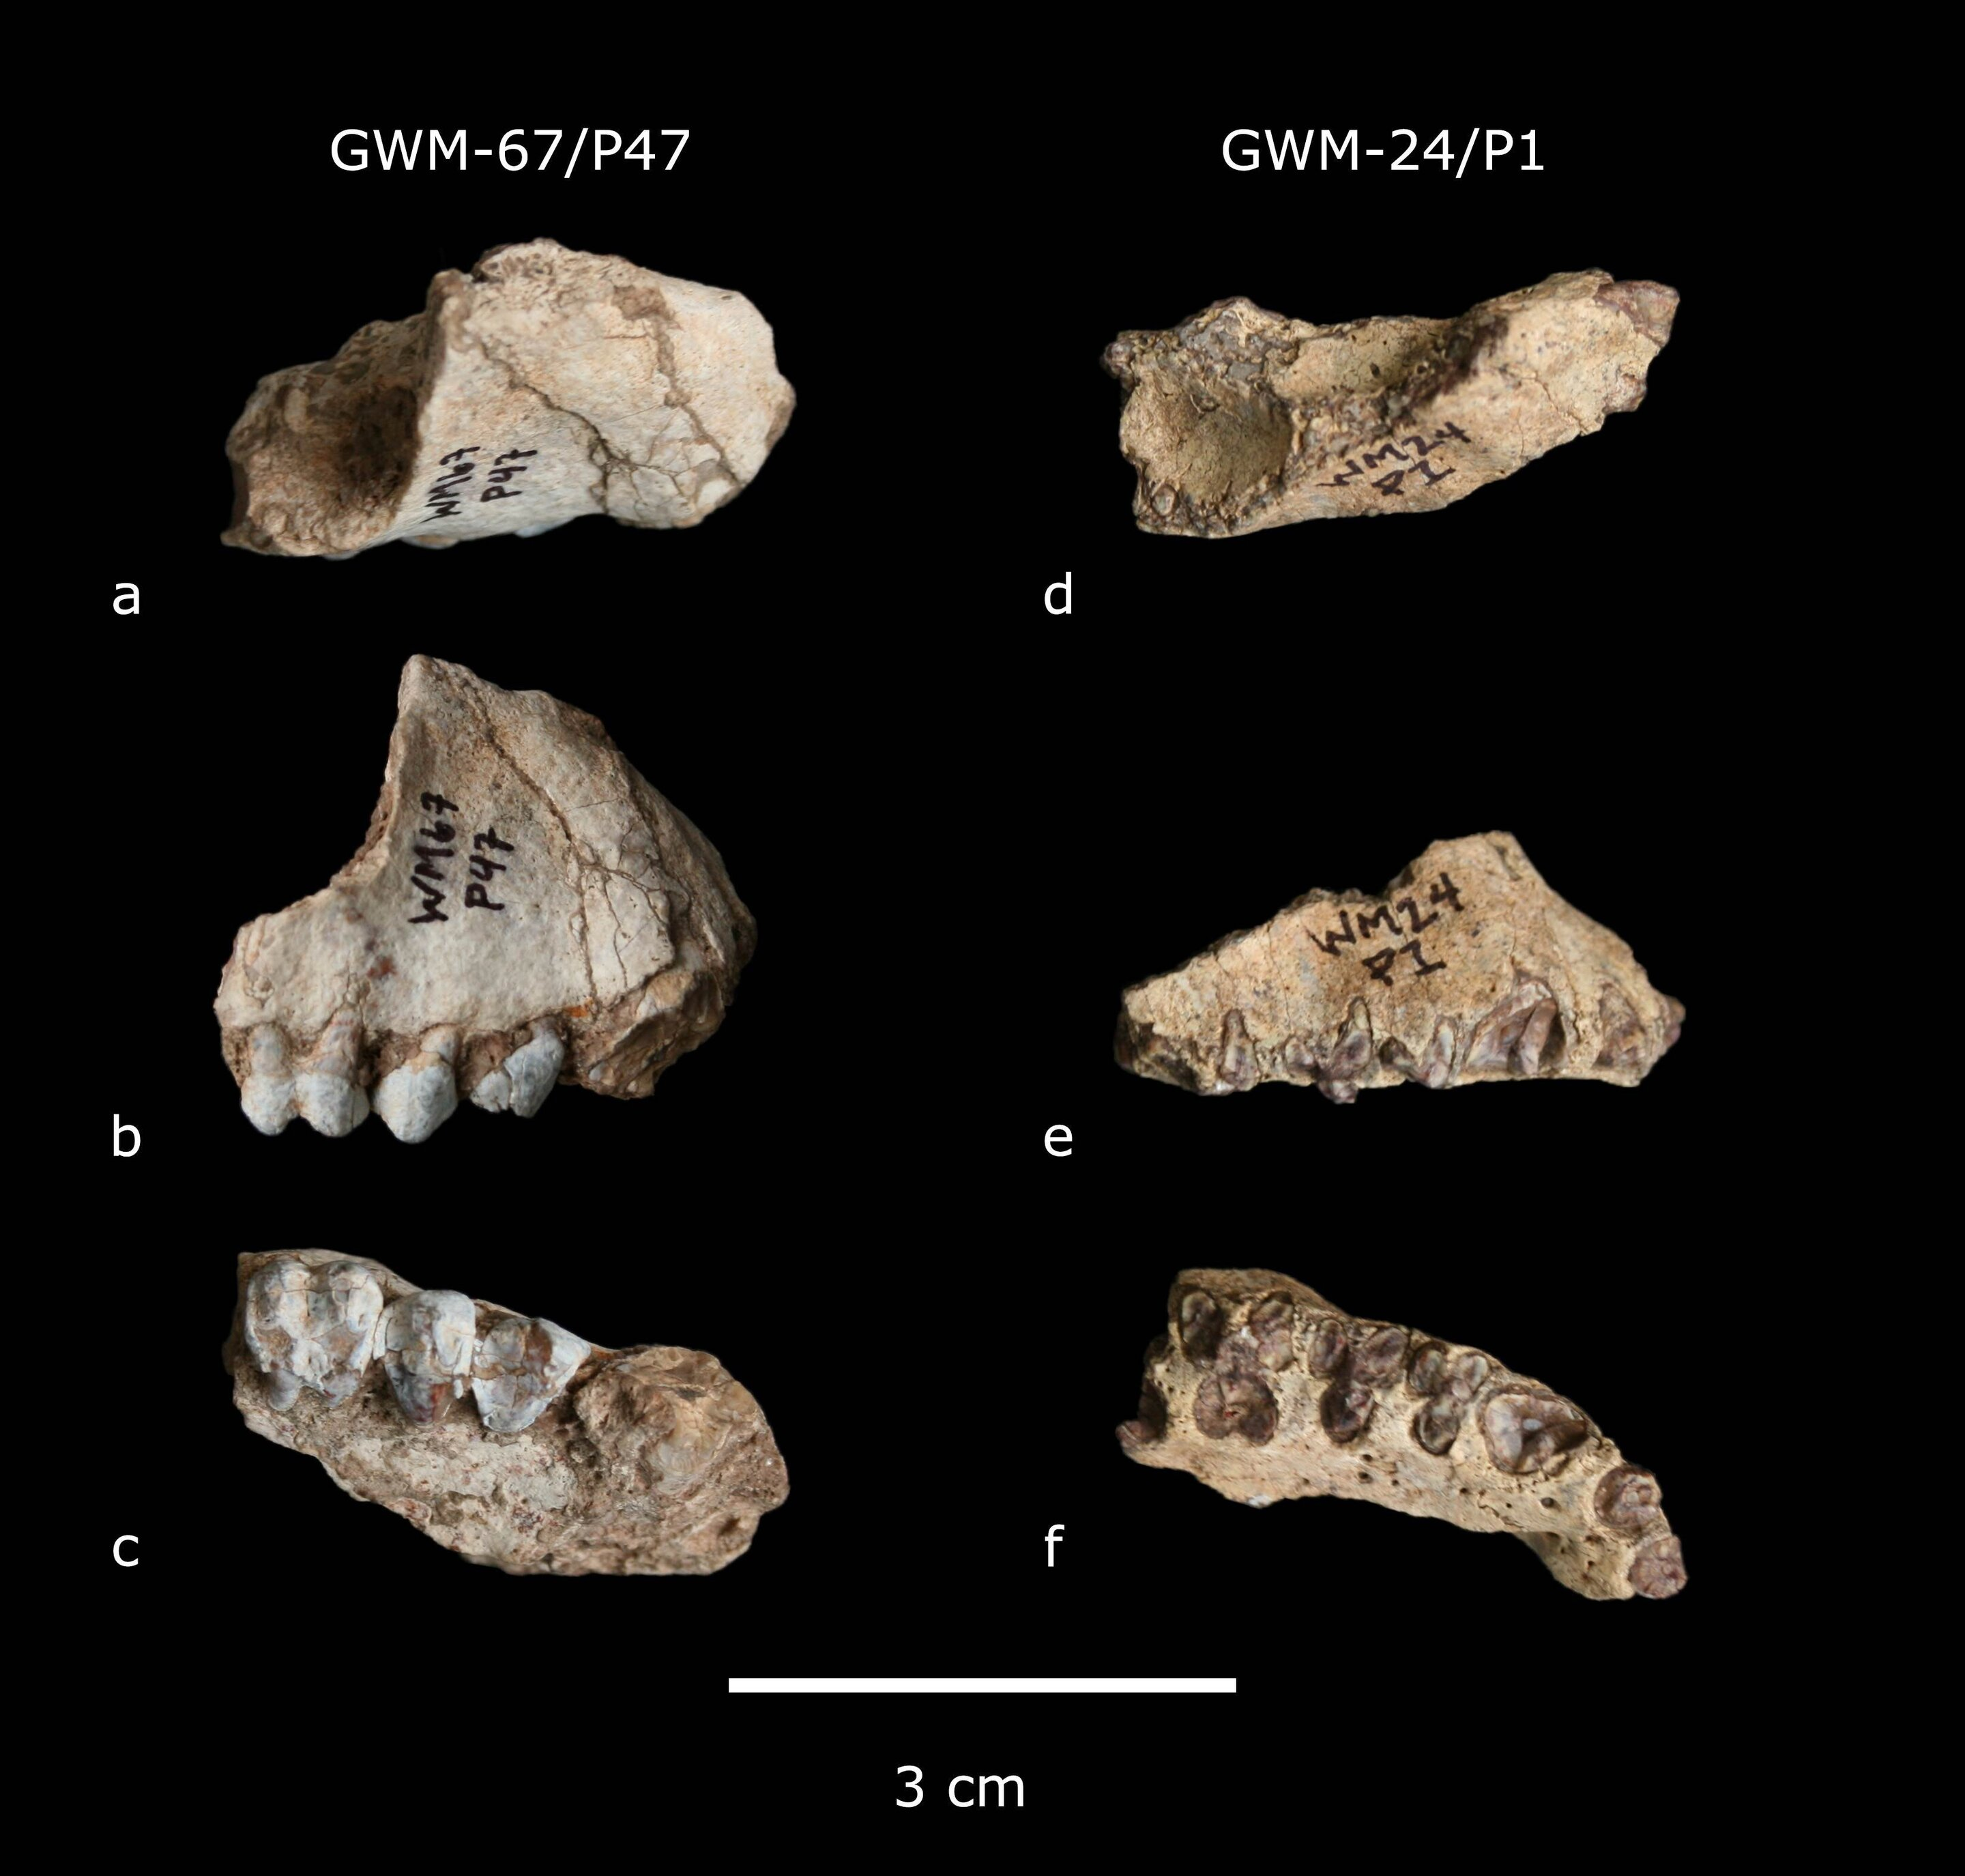 Two new extinct primate species are found in the Ethiopia site of Gona